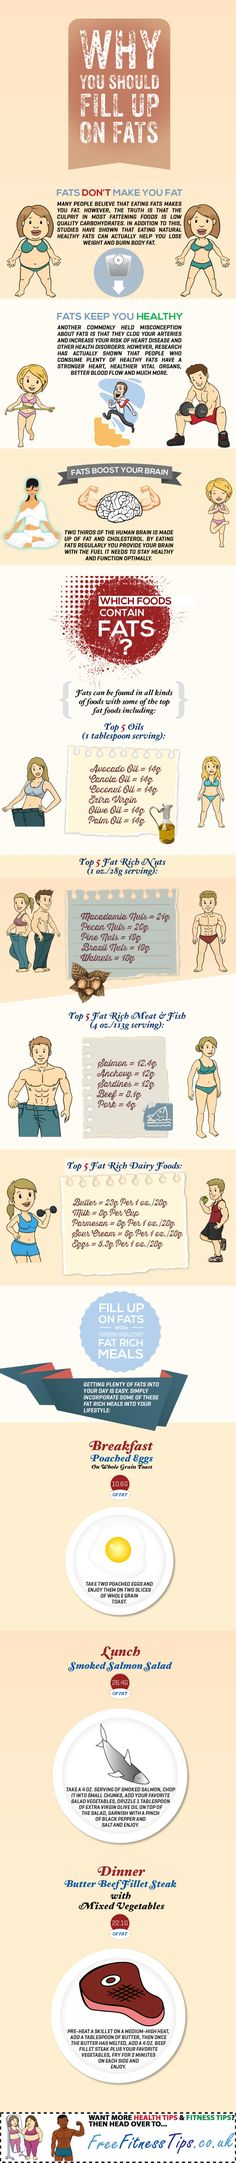 Why You Should Fill Up On Fats Infographic